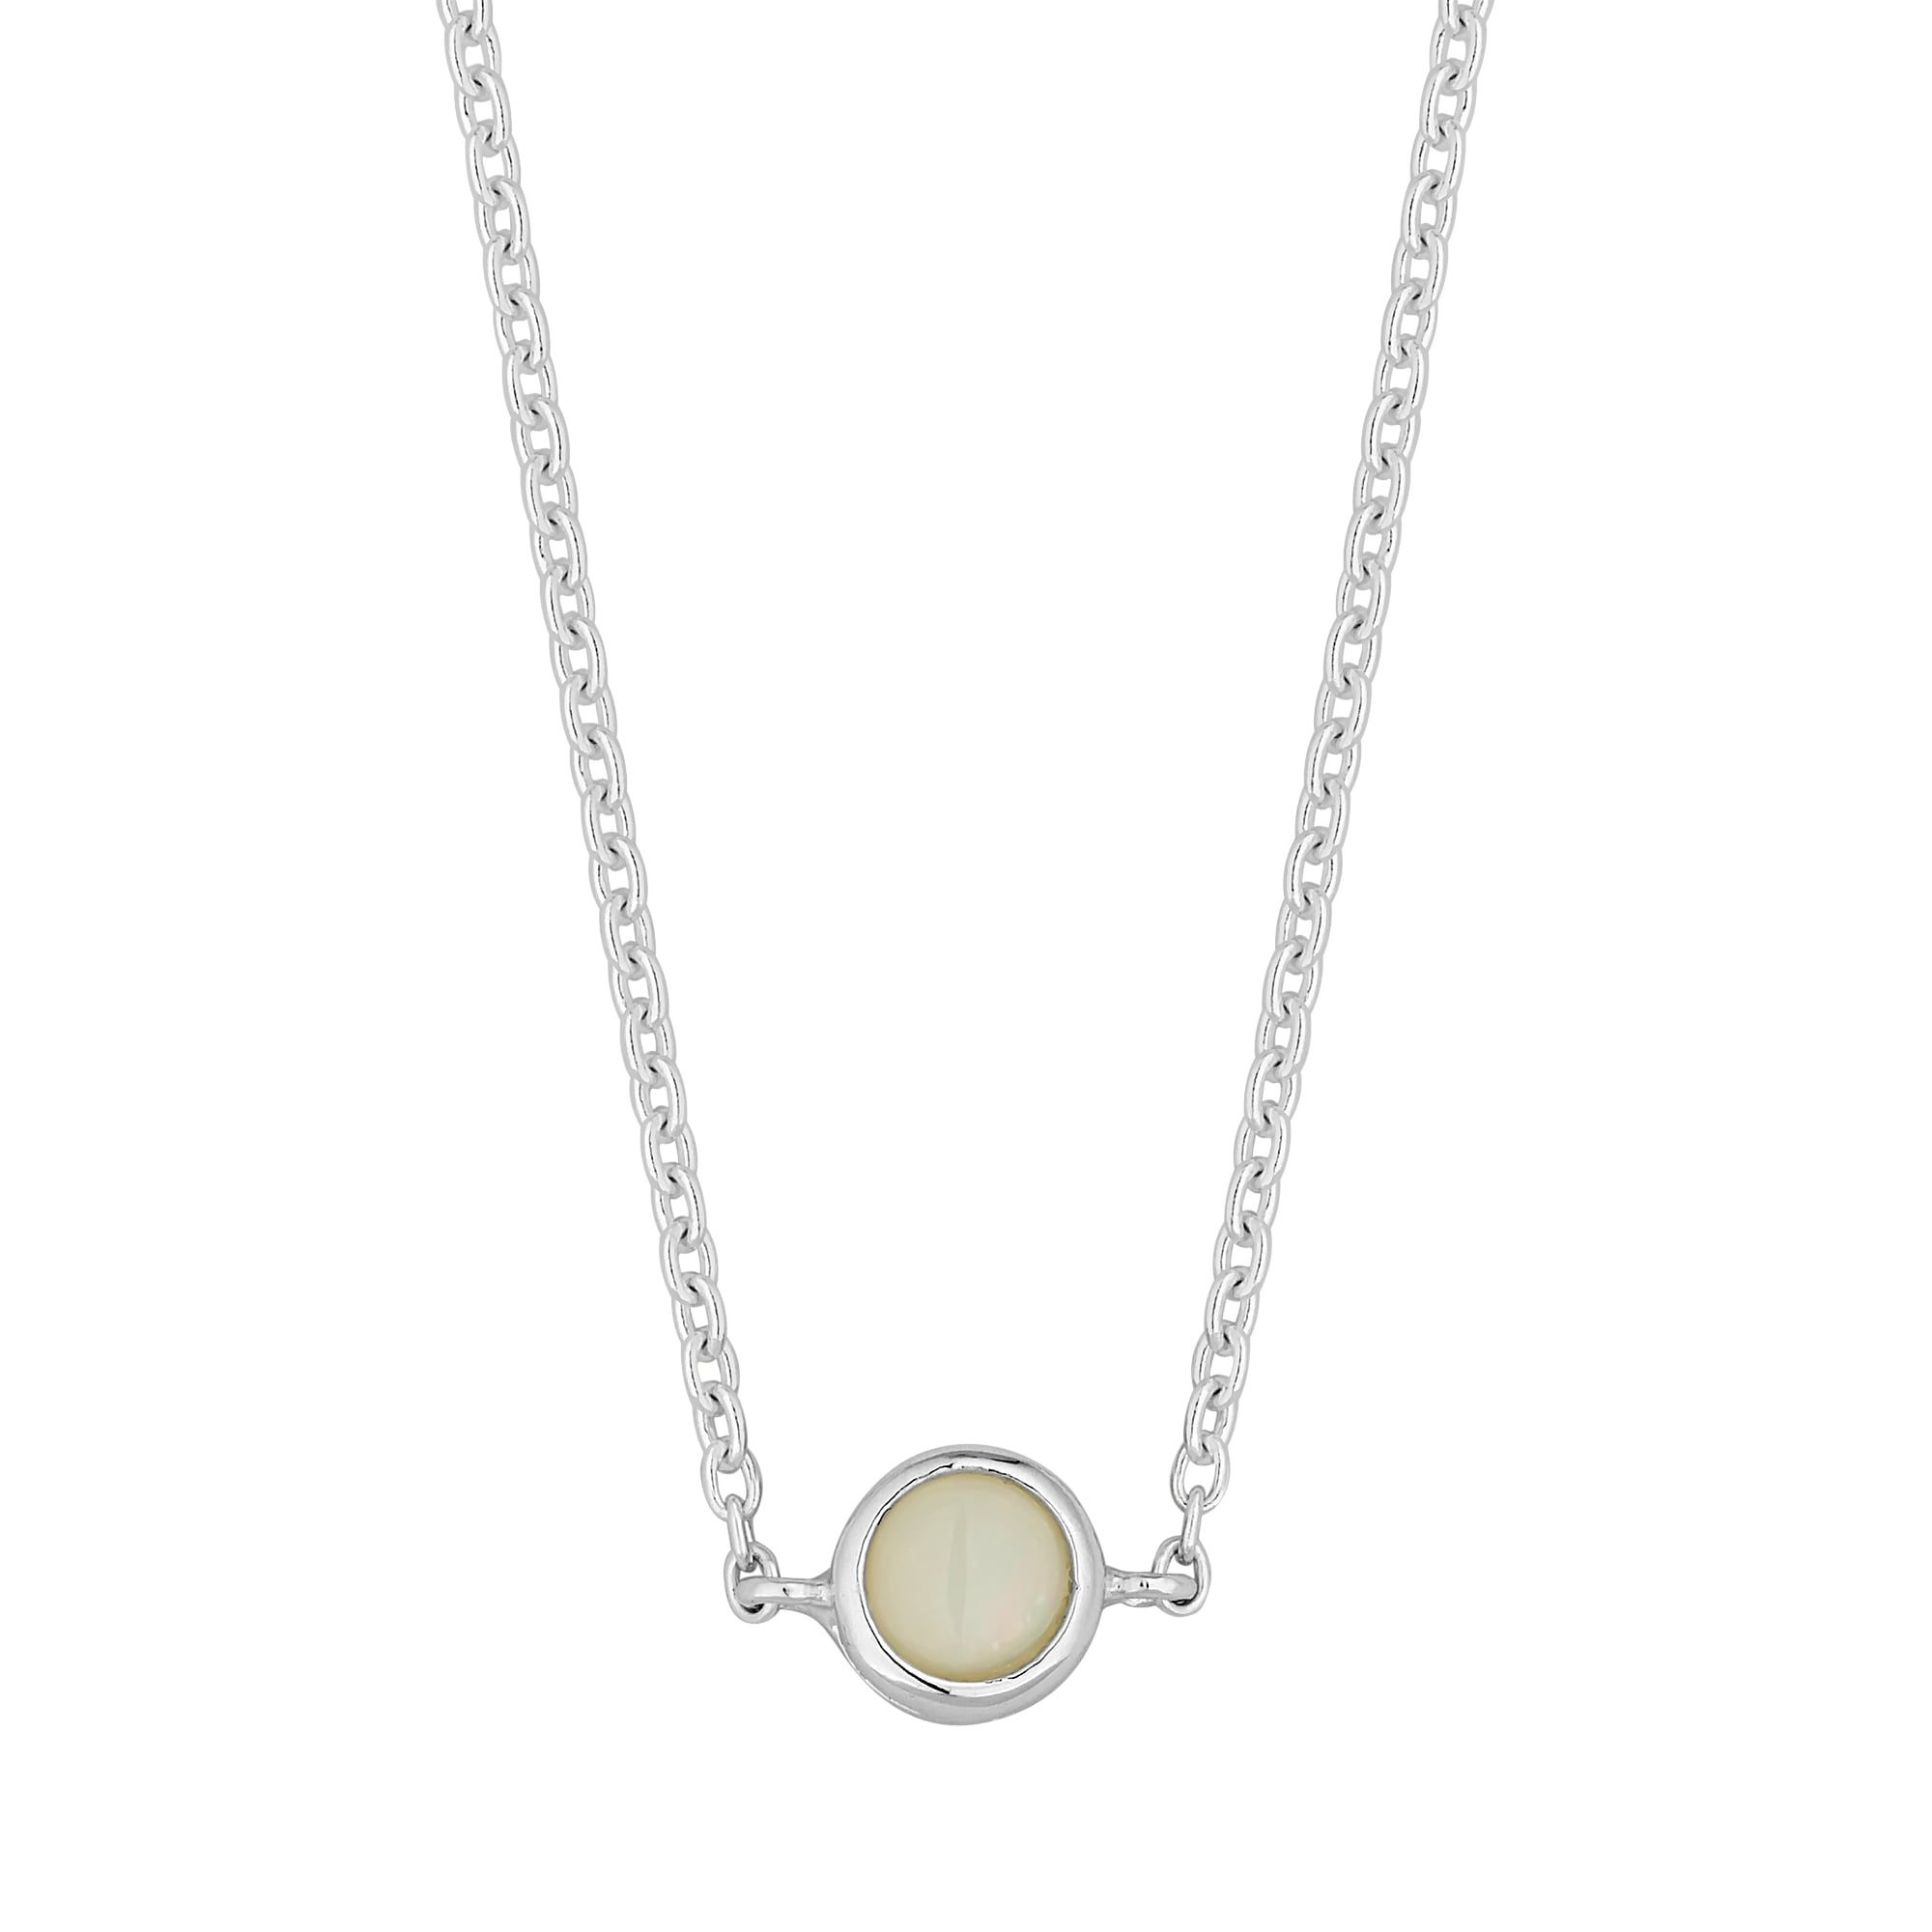 hands bj eye sacred necklace white rg products jewellery opal